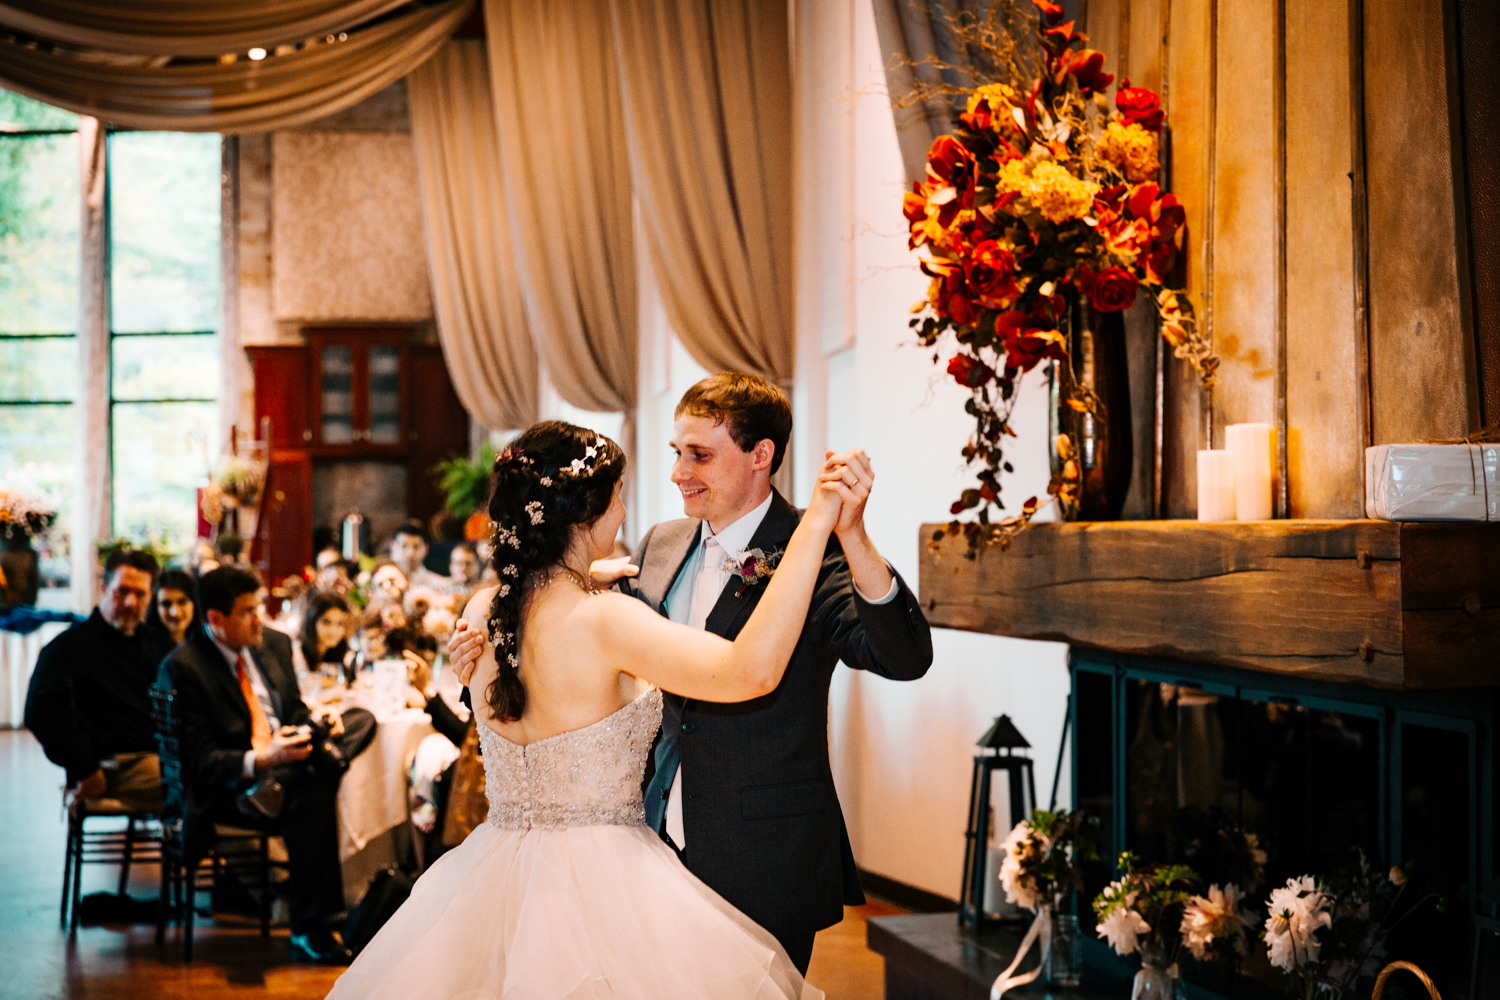 first-dance-bride-groom-boston-wedding-photographer-new-england-elizabeth-park-hartdford-connecticut.jpg